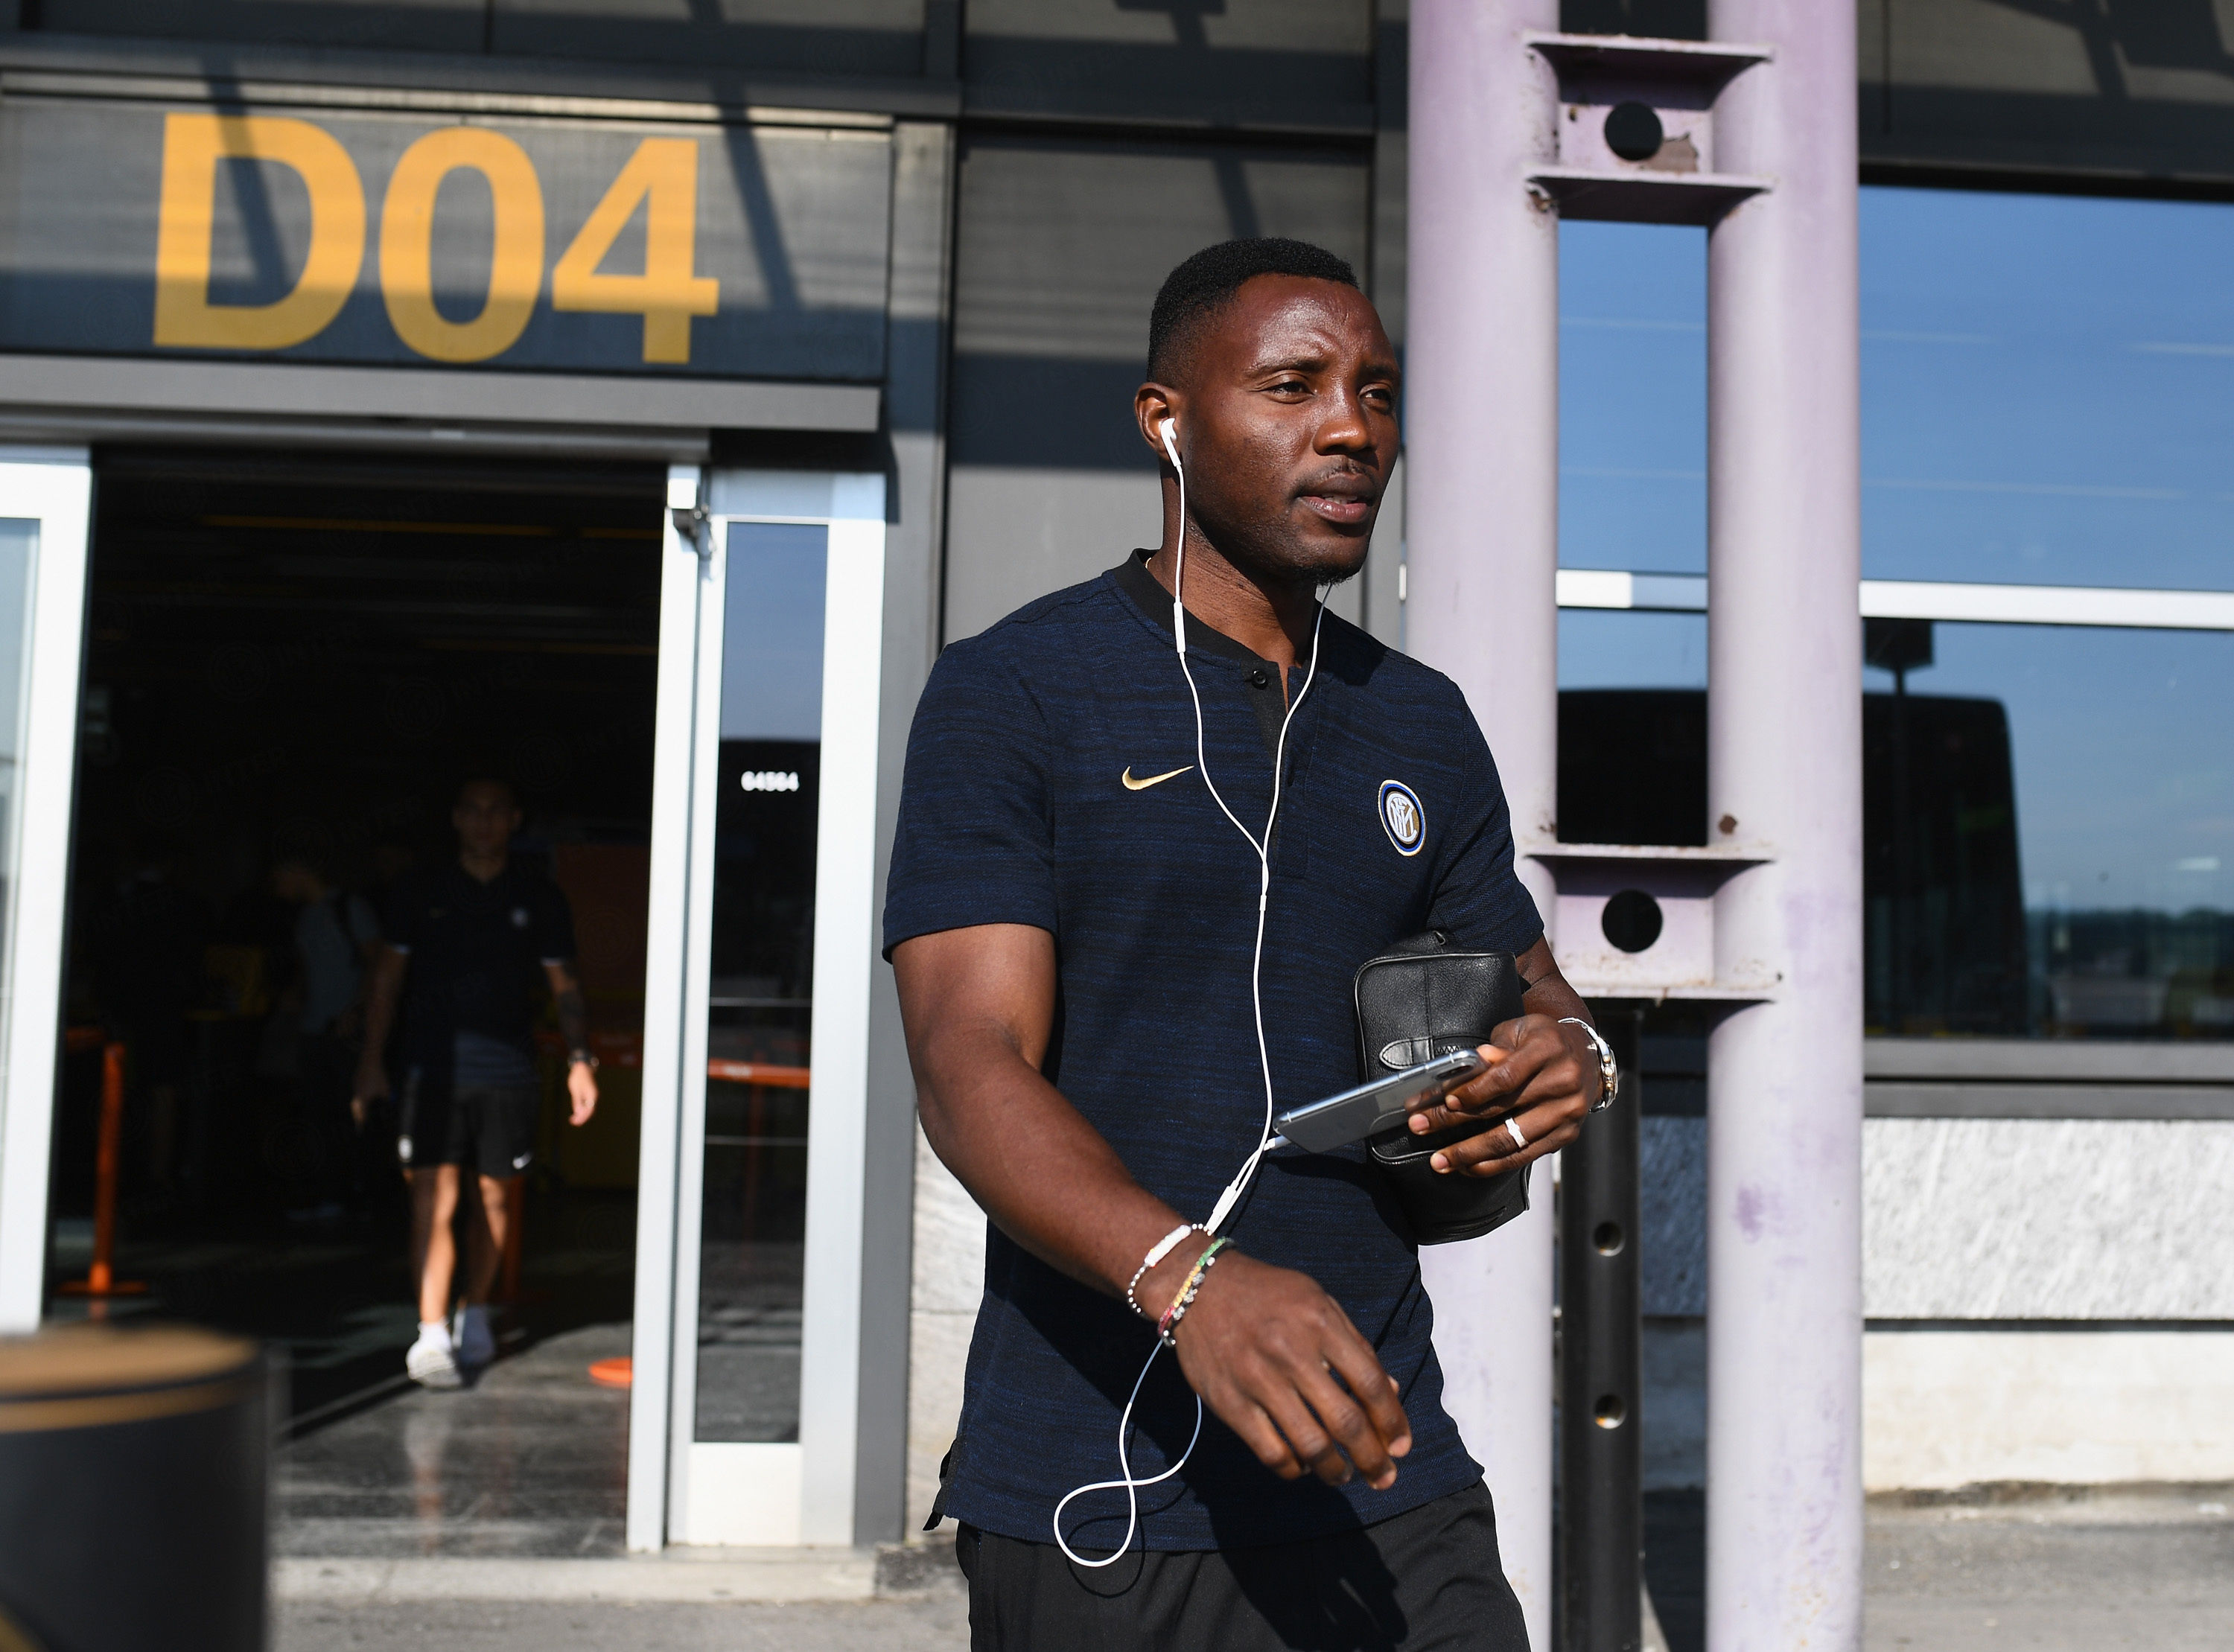 Inter have arrived in Sion